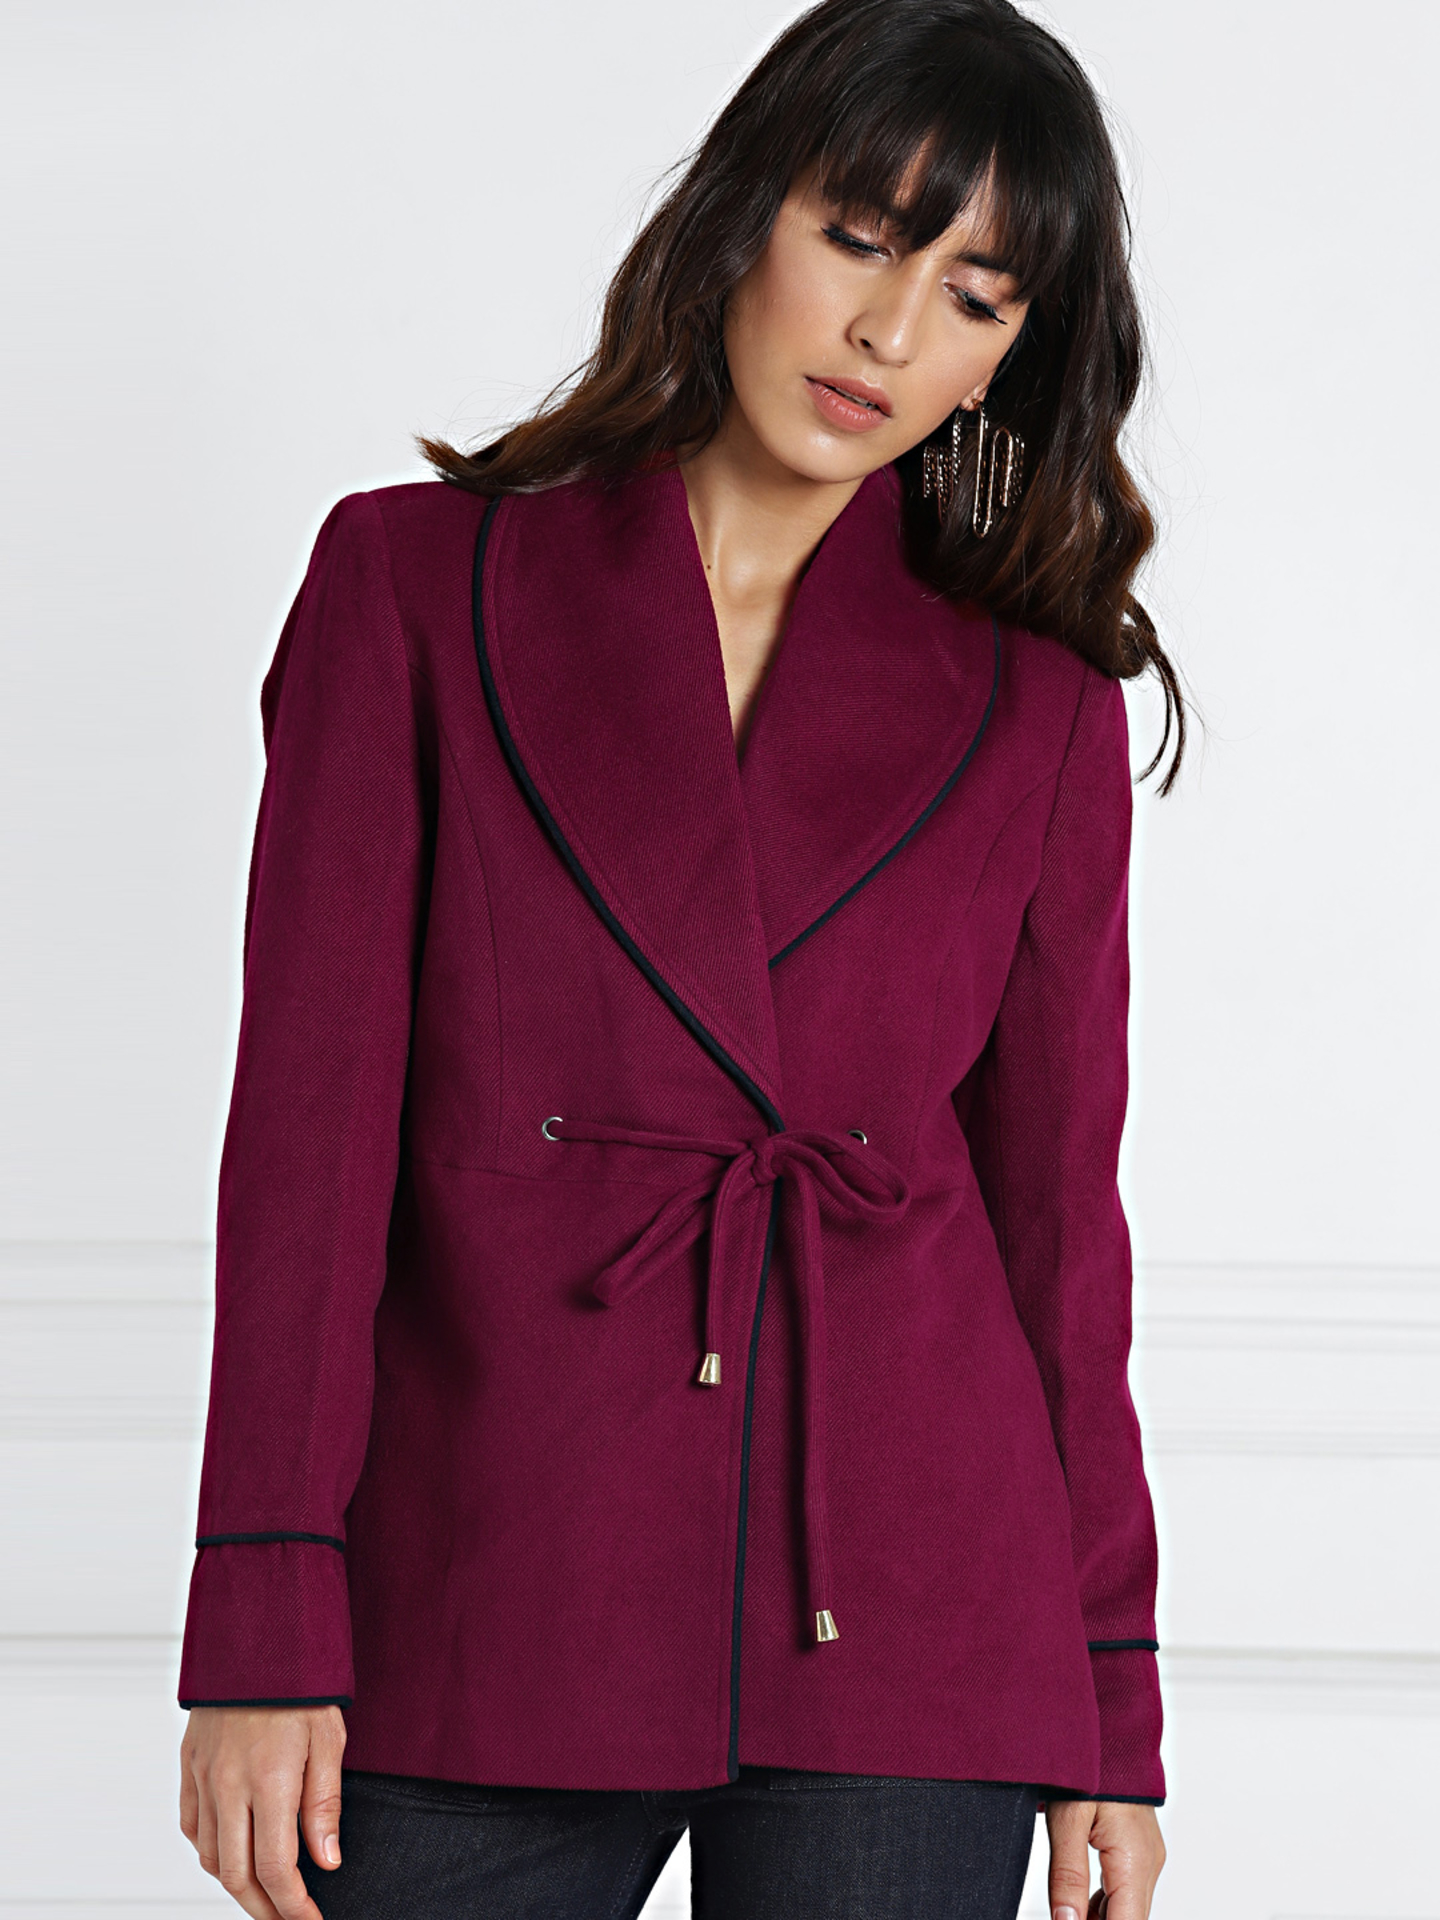 shopaholicpals - 5196ded4-4d0a-4ed7-a96f-a06a7ddee8281535374734942-all-about-you-from-Deepika-Padukone-Women-Burgundy-Solid-Tailored-Jacket-1511535374734783-1